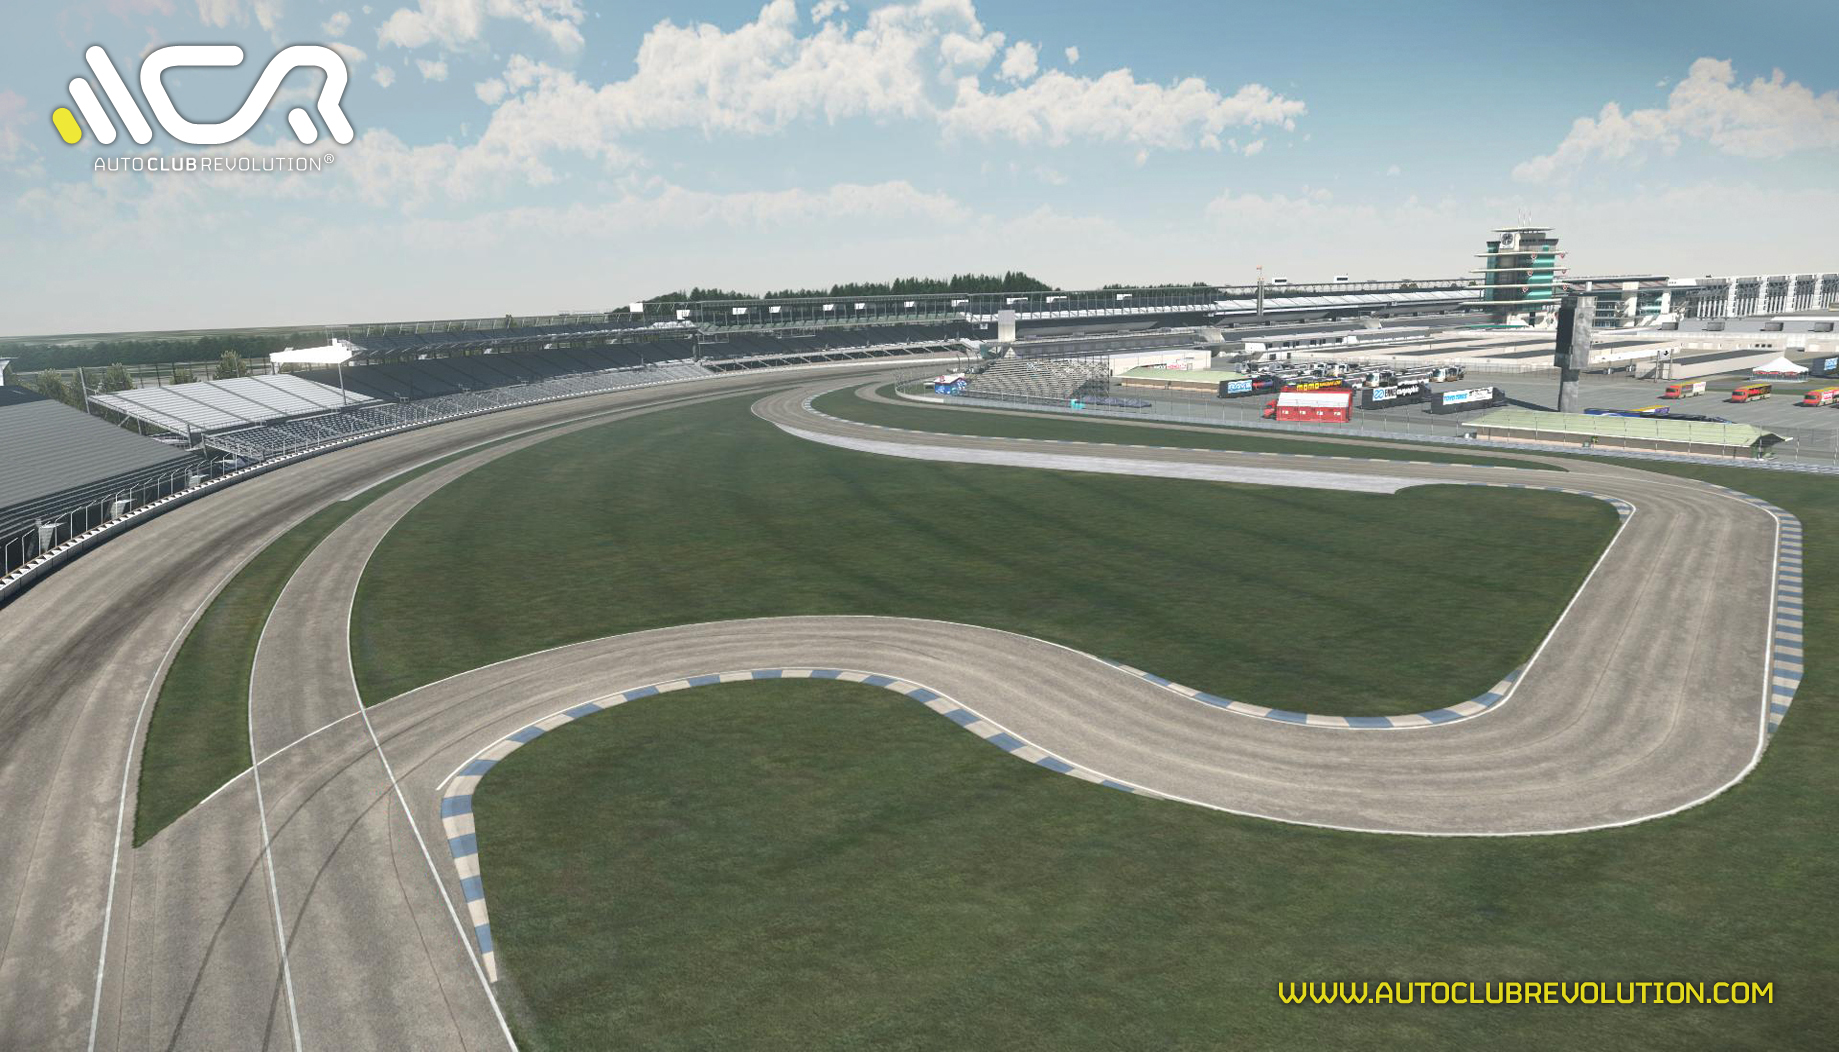 Auto Club Revolution - Indianapolis Motor Speedway 3